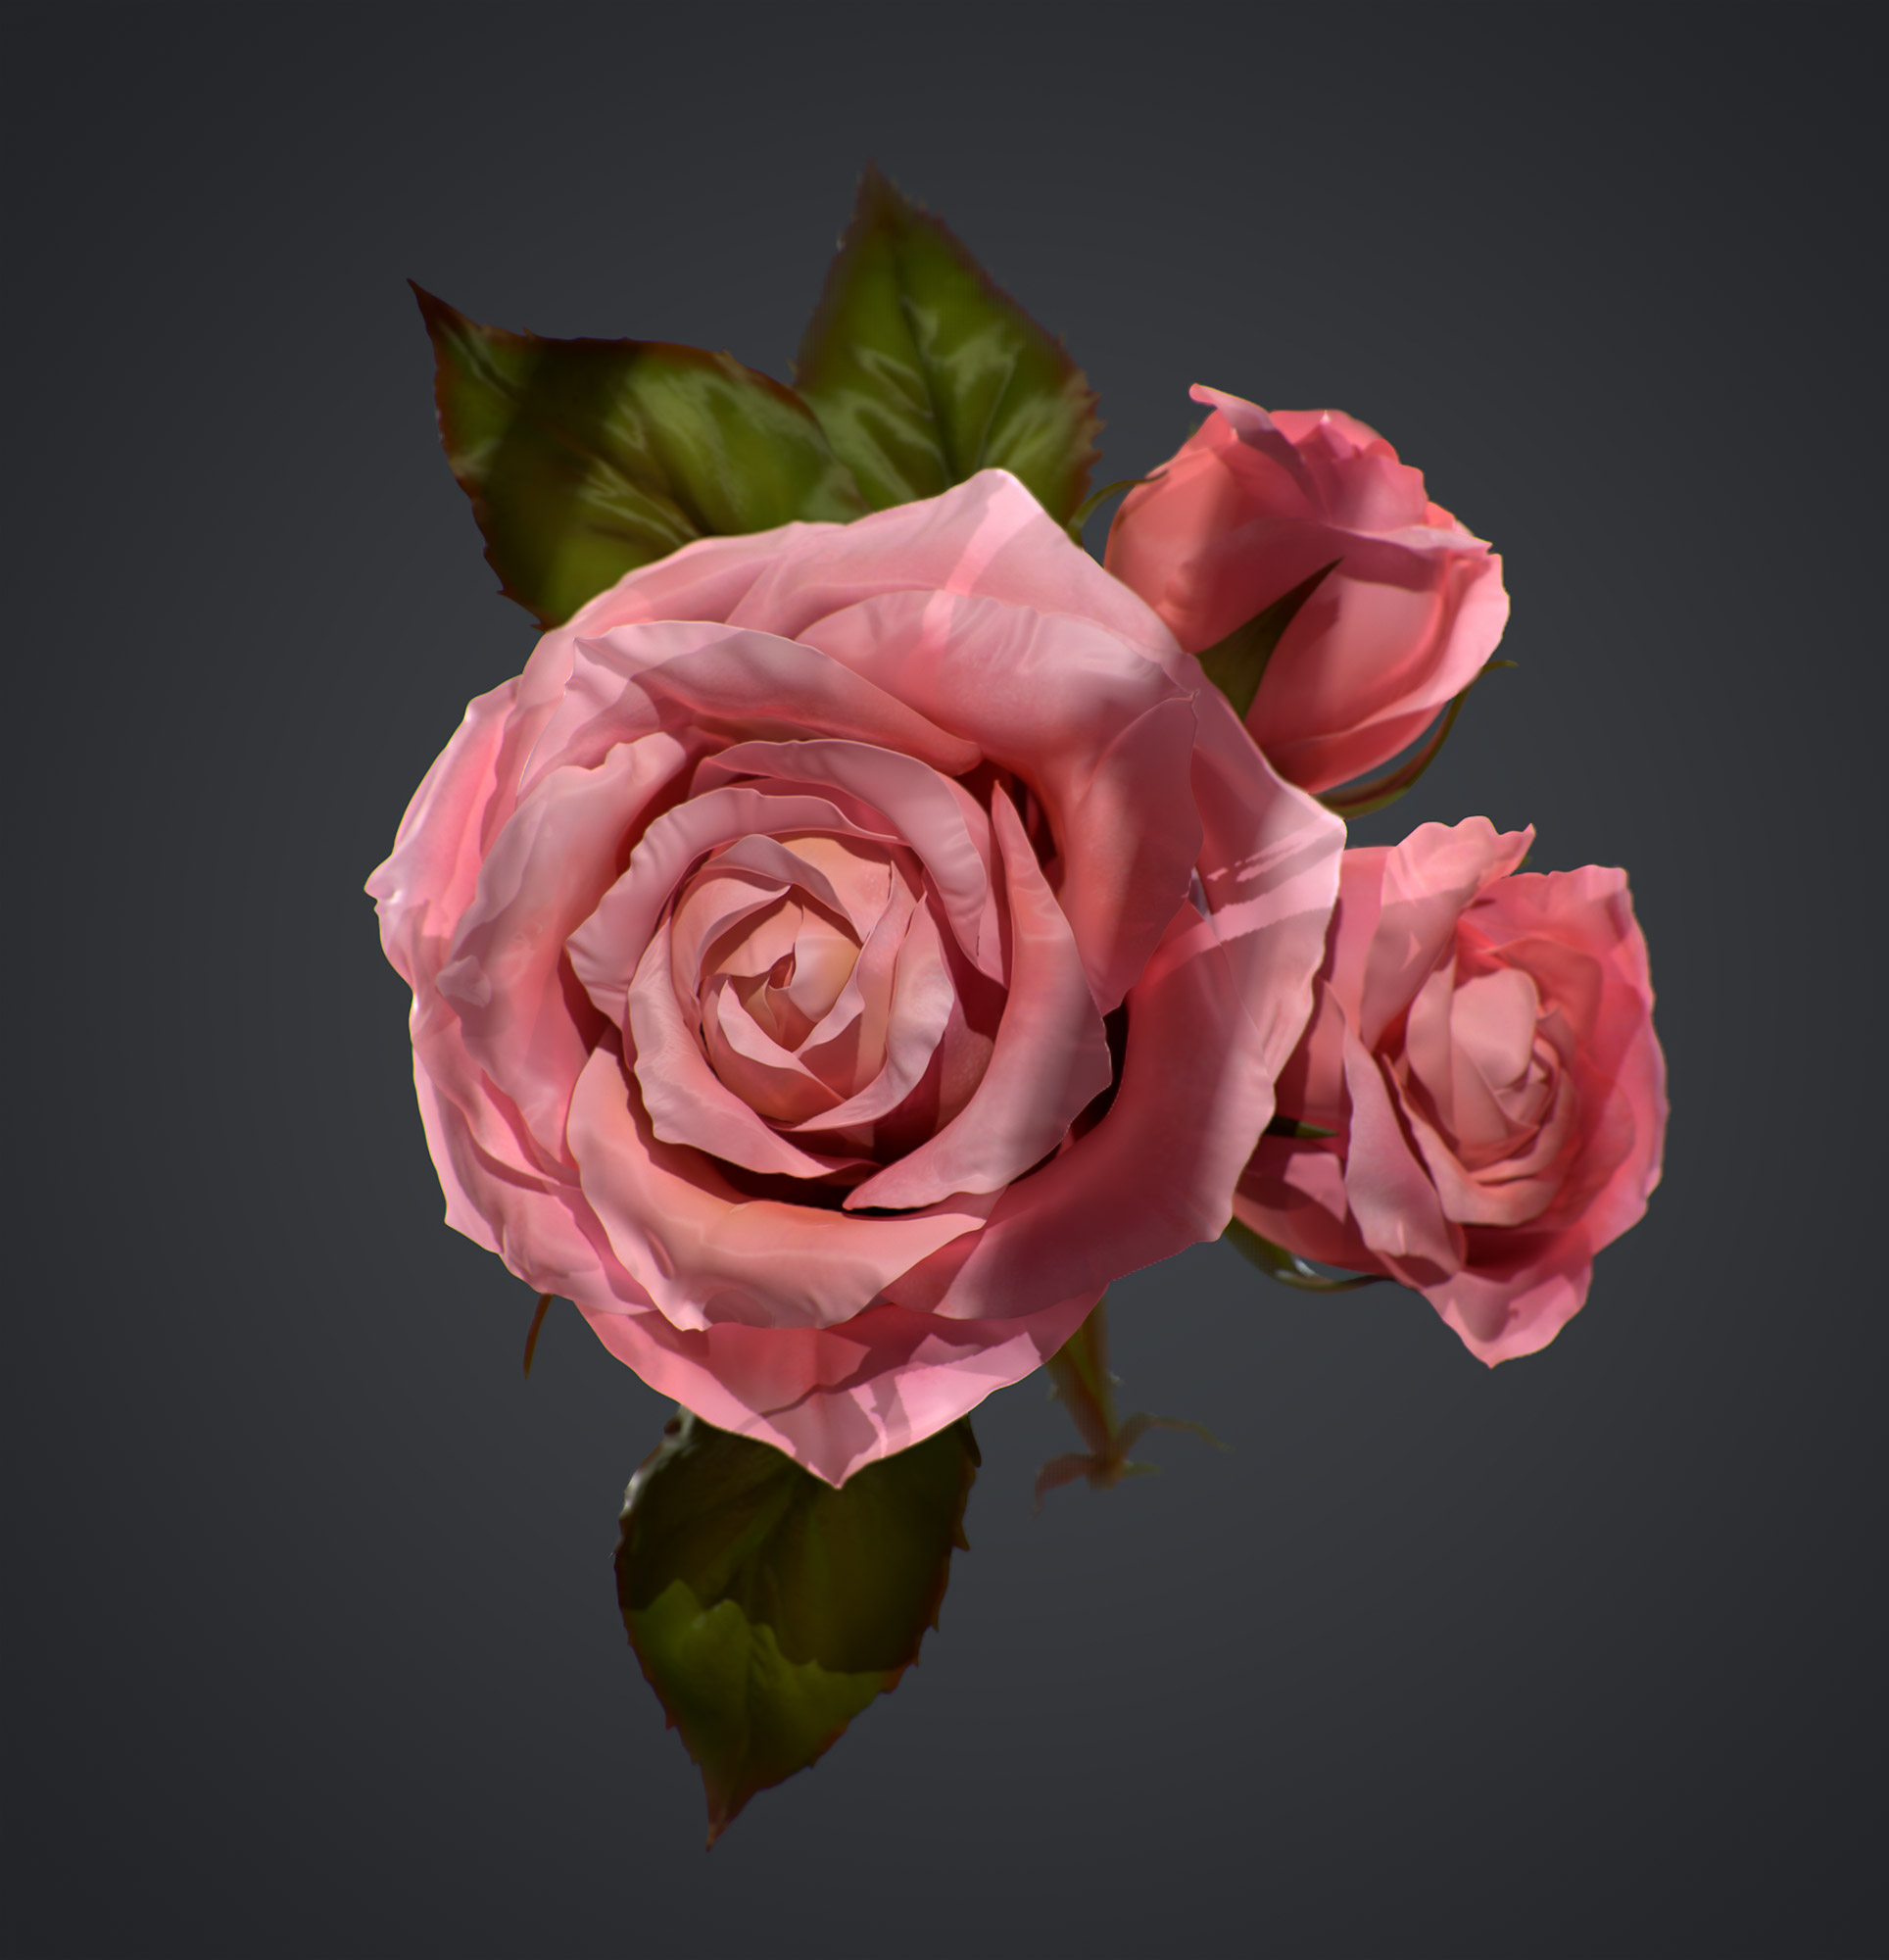 rose_2_001_small